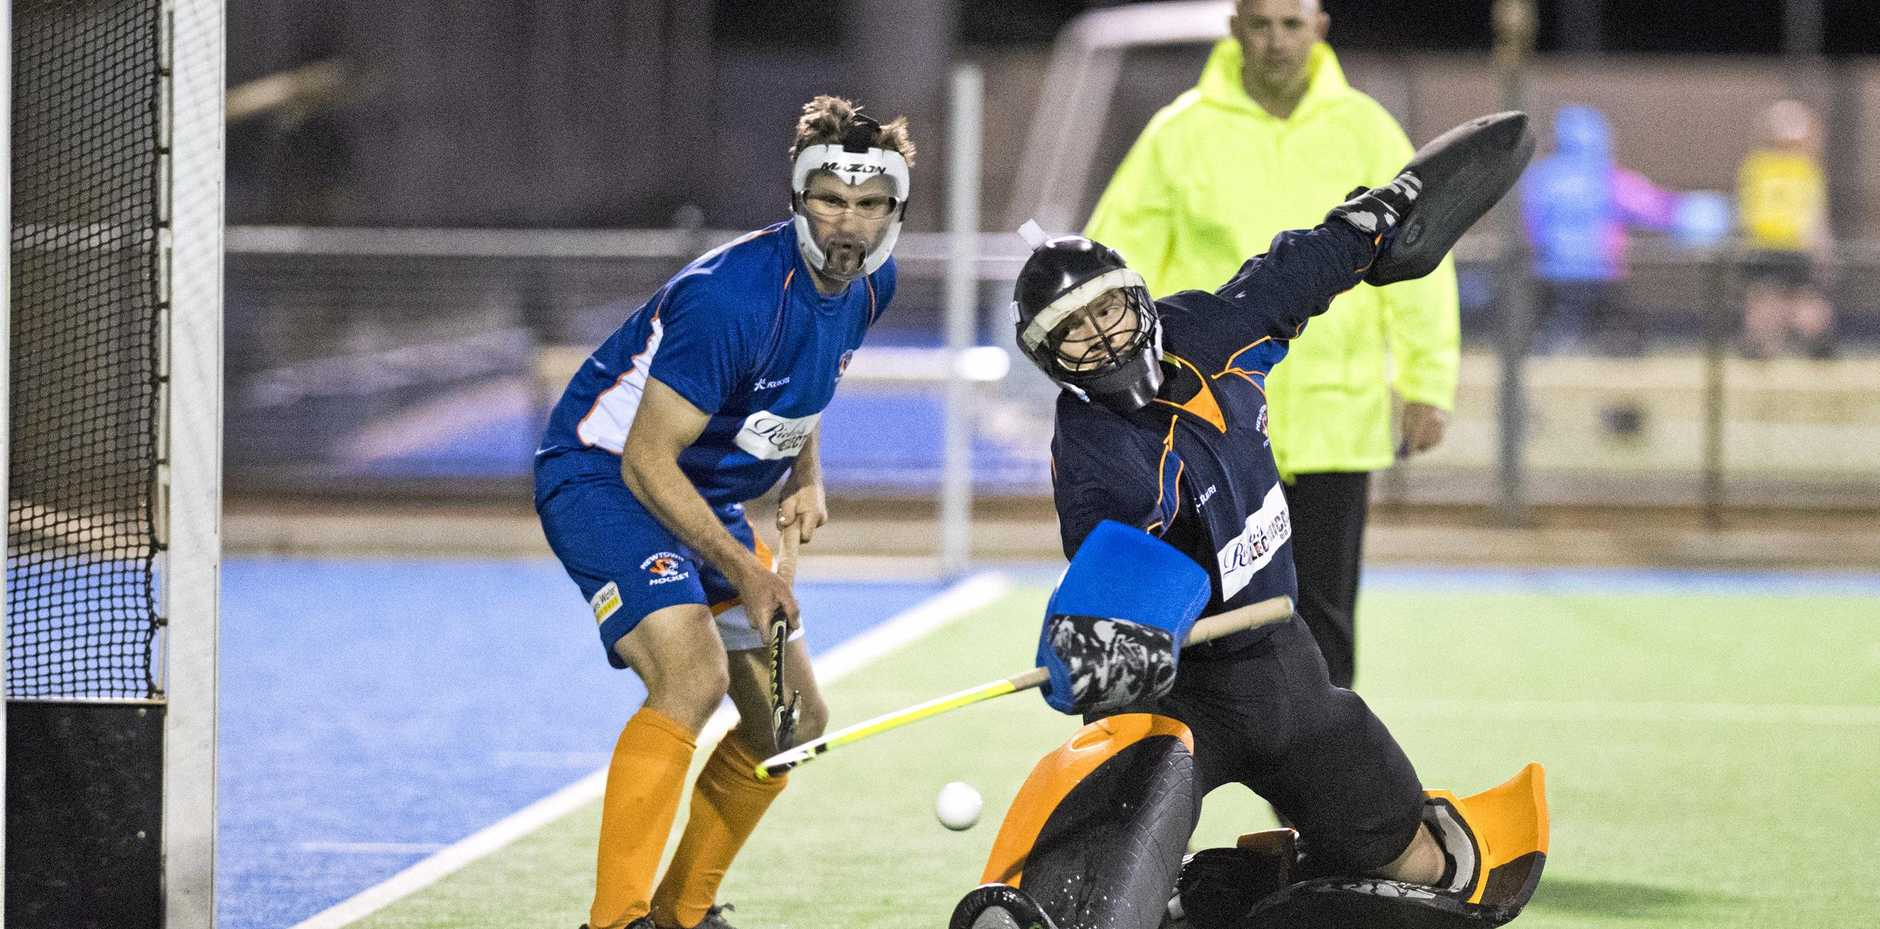 CRACKING SAVE: Newtown goalkeeper Michael Elsasser makes a save from a penalty corner against Past High.